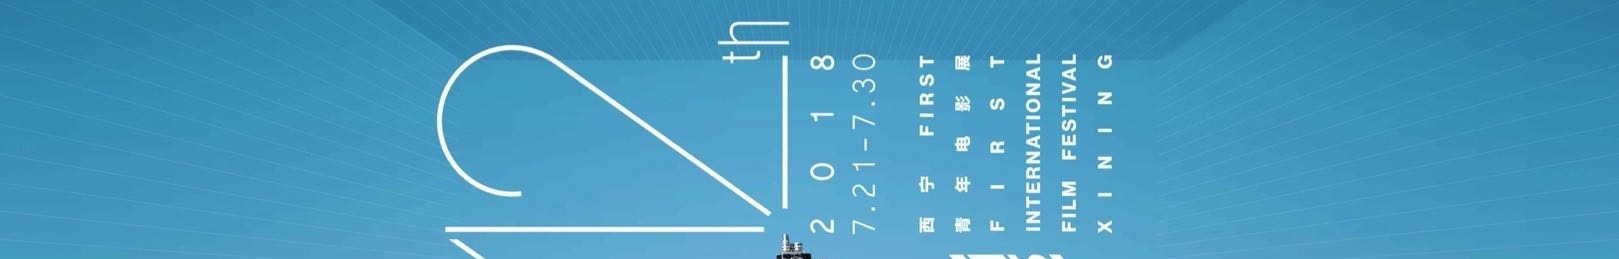 FIRST青年电影展官方发布 banner